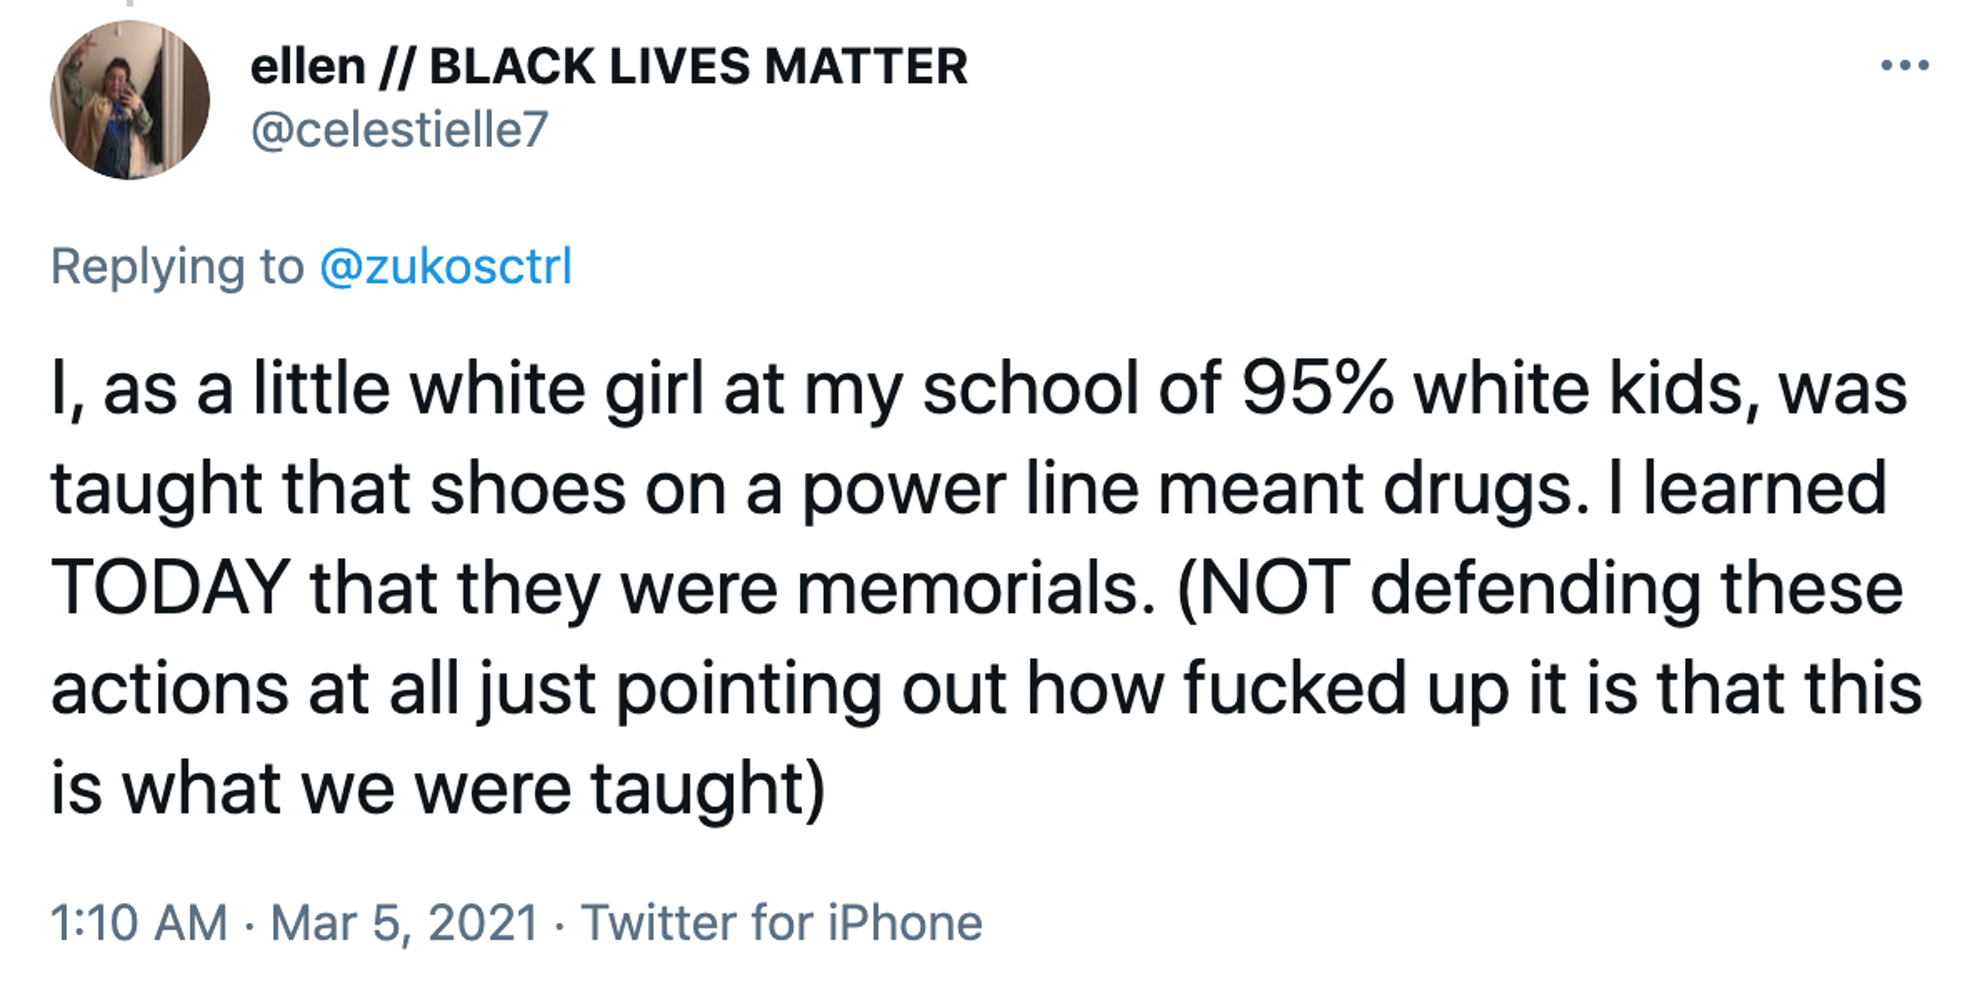 I, as a little white girl at my school of 95% white kids, was taught that shoes on a power line meant drugs. I learned TODAY that they were memorials. (NOT defending these actions at all just pointing out how fucked up it is that this is what we were taught)